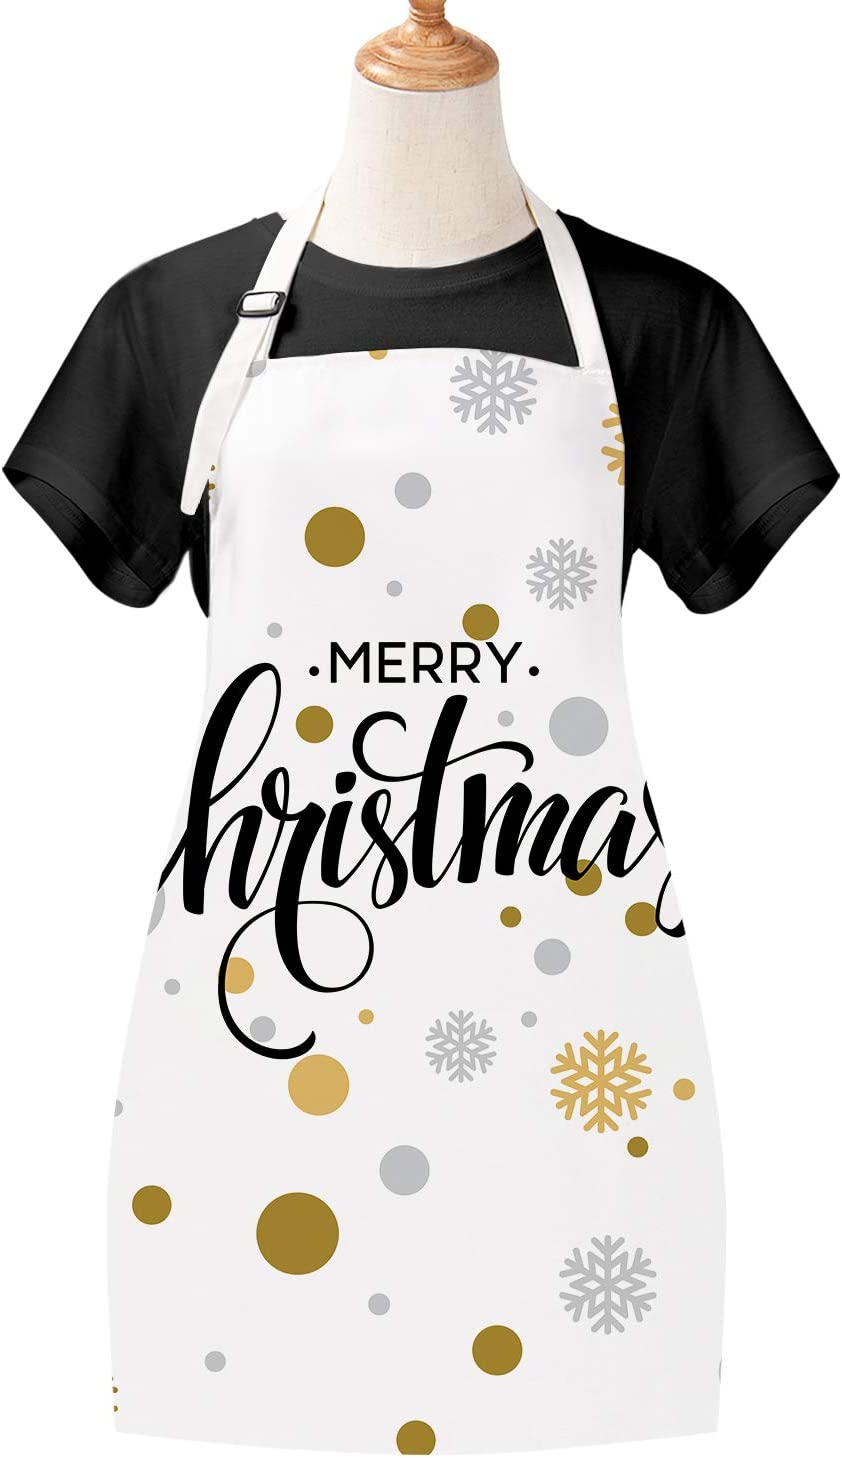 Claswcalor Merry Christmas Apron Snowflake Waterproof Cooking Aprons for Christmas  Party  Celebration Gift  Men Women Kitchen Apron with Adjustable Neck Strap and Long Ties